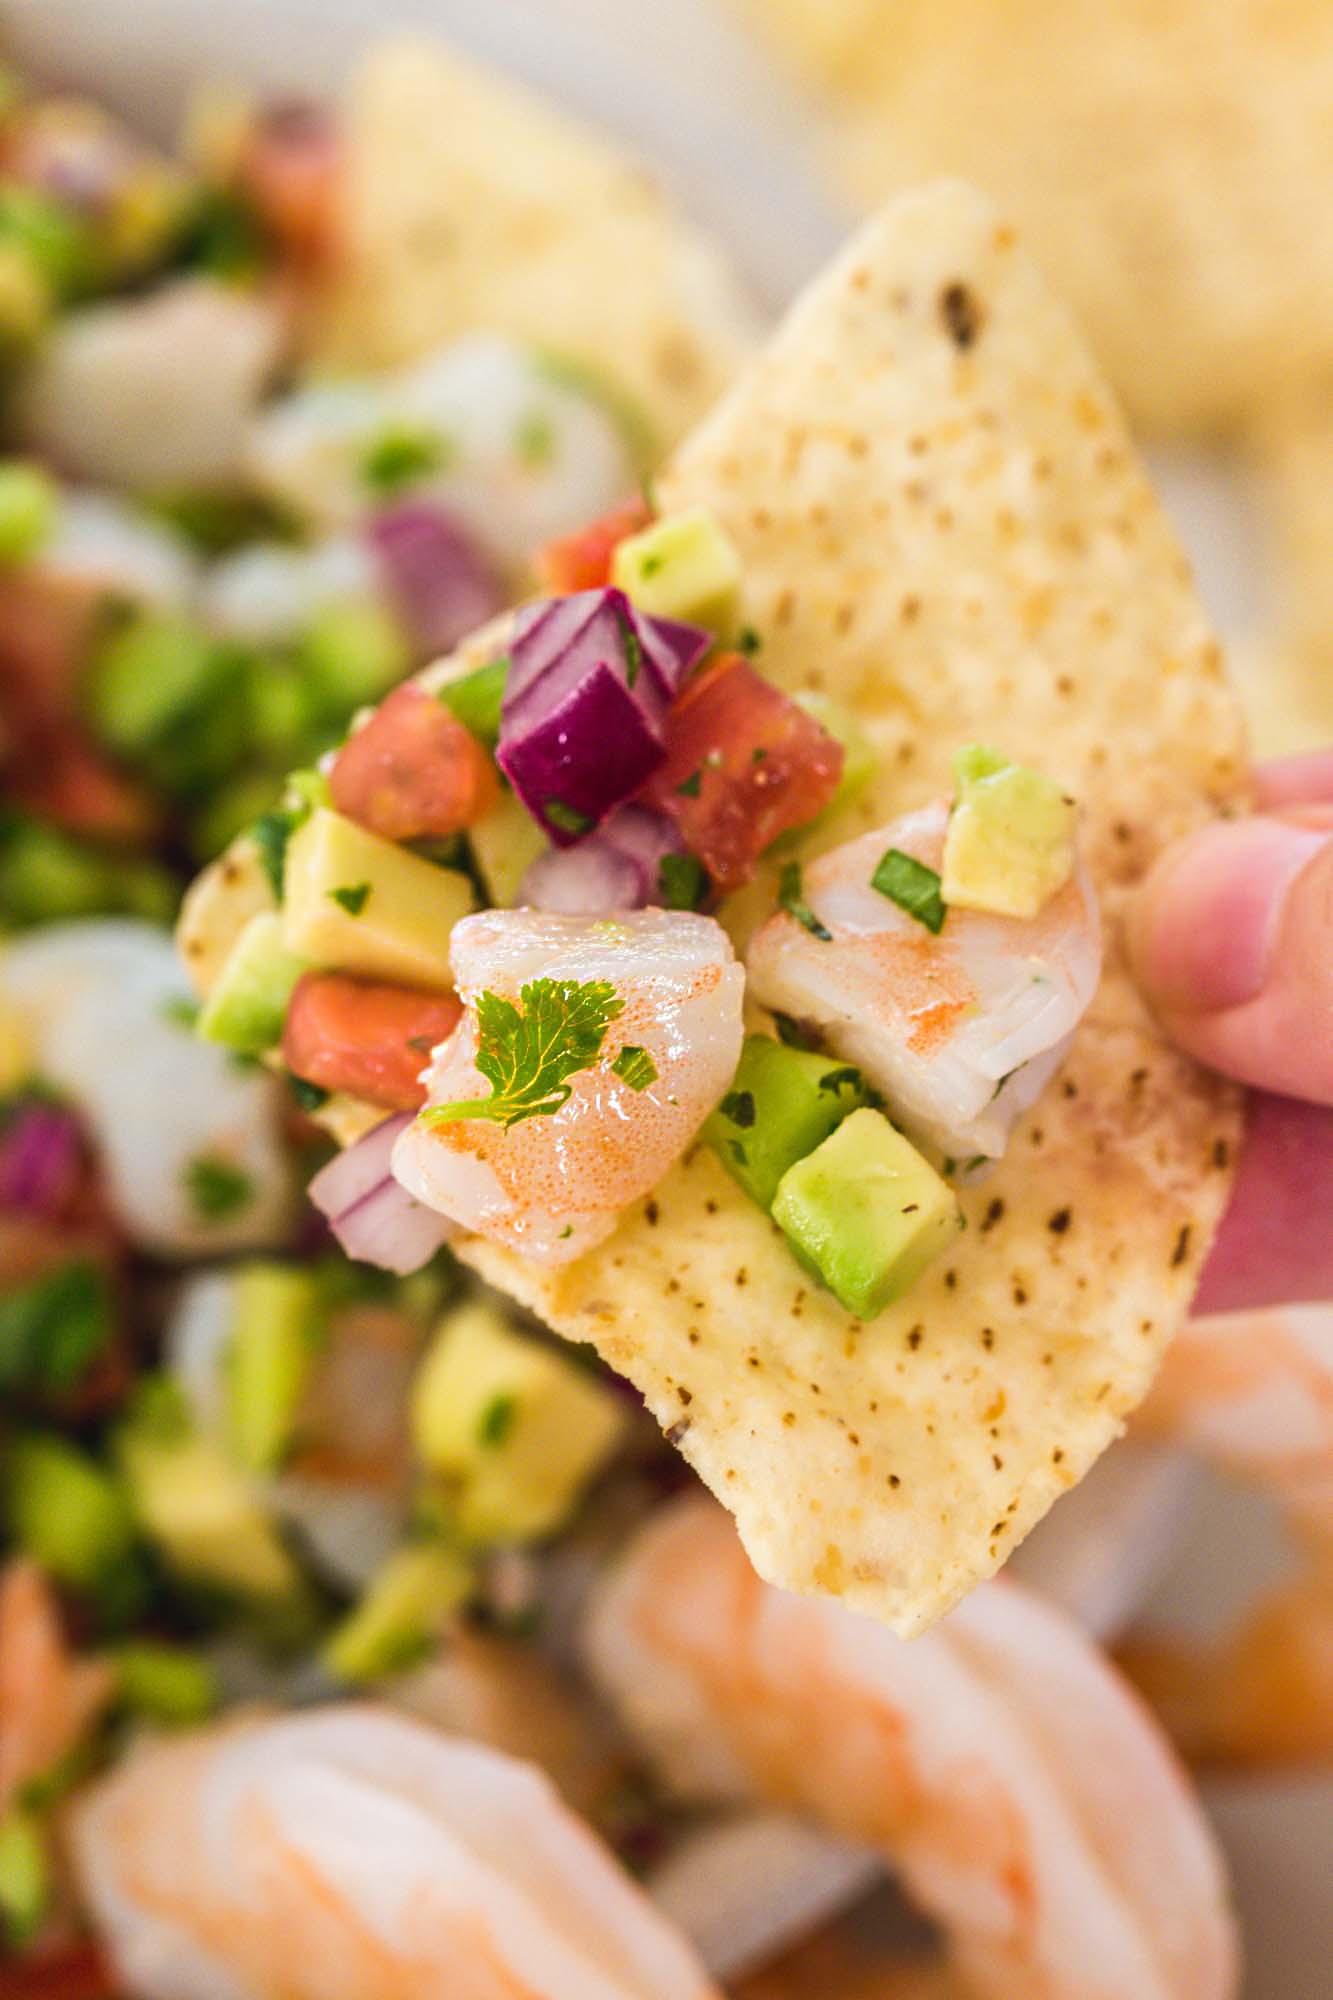 A close up shot of shrimp ceviche being enjoyed with a corn tortilla chip